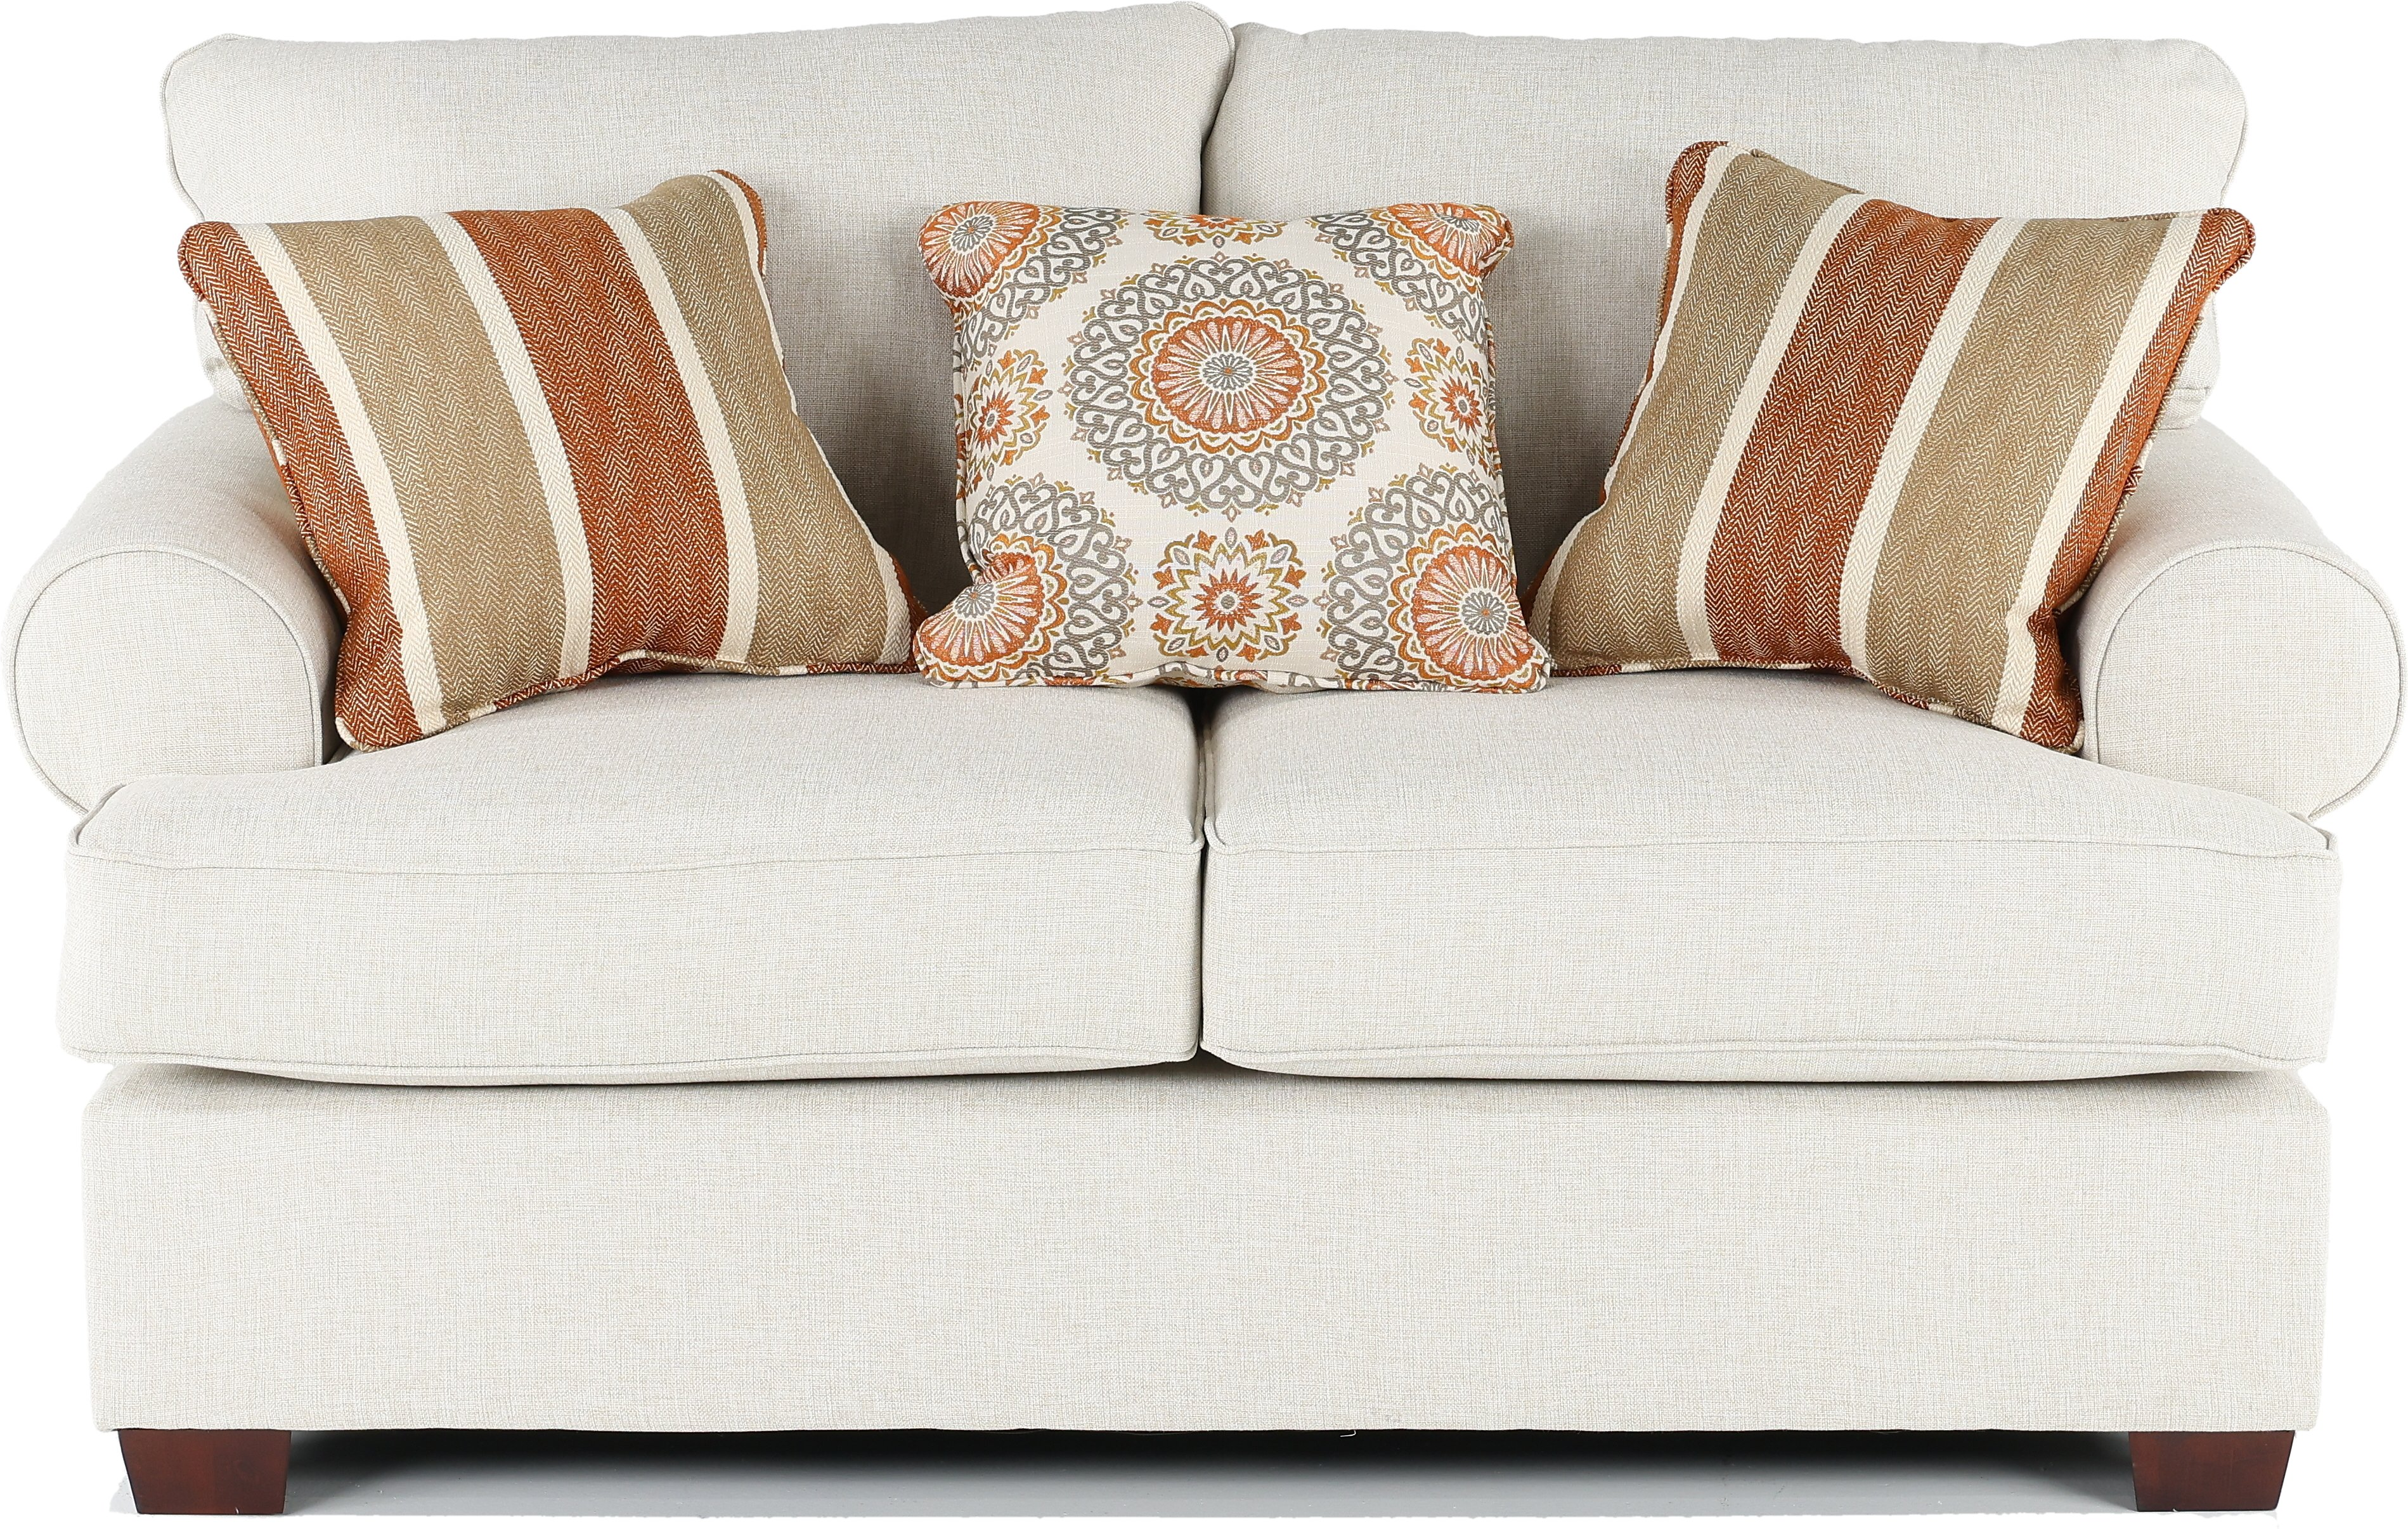 Linen living room loveseat fabric sofas f 7450 acme for Jordan linen modern living room sofa